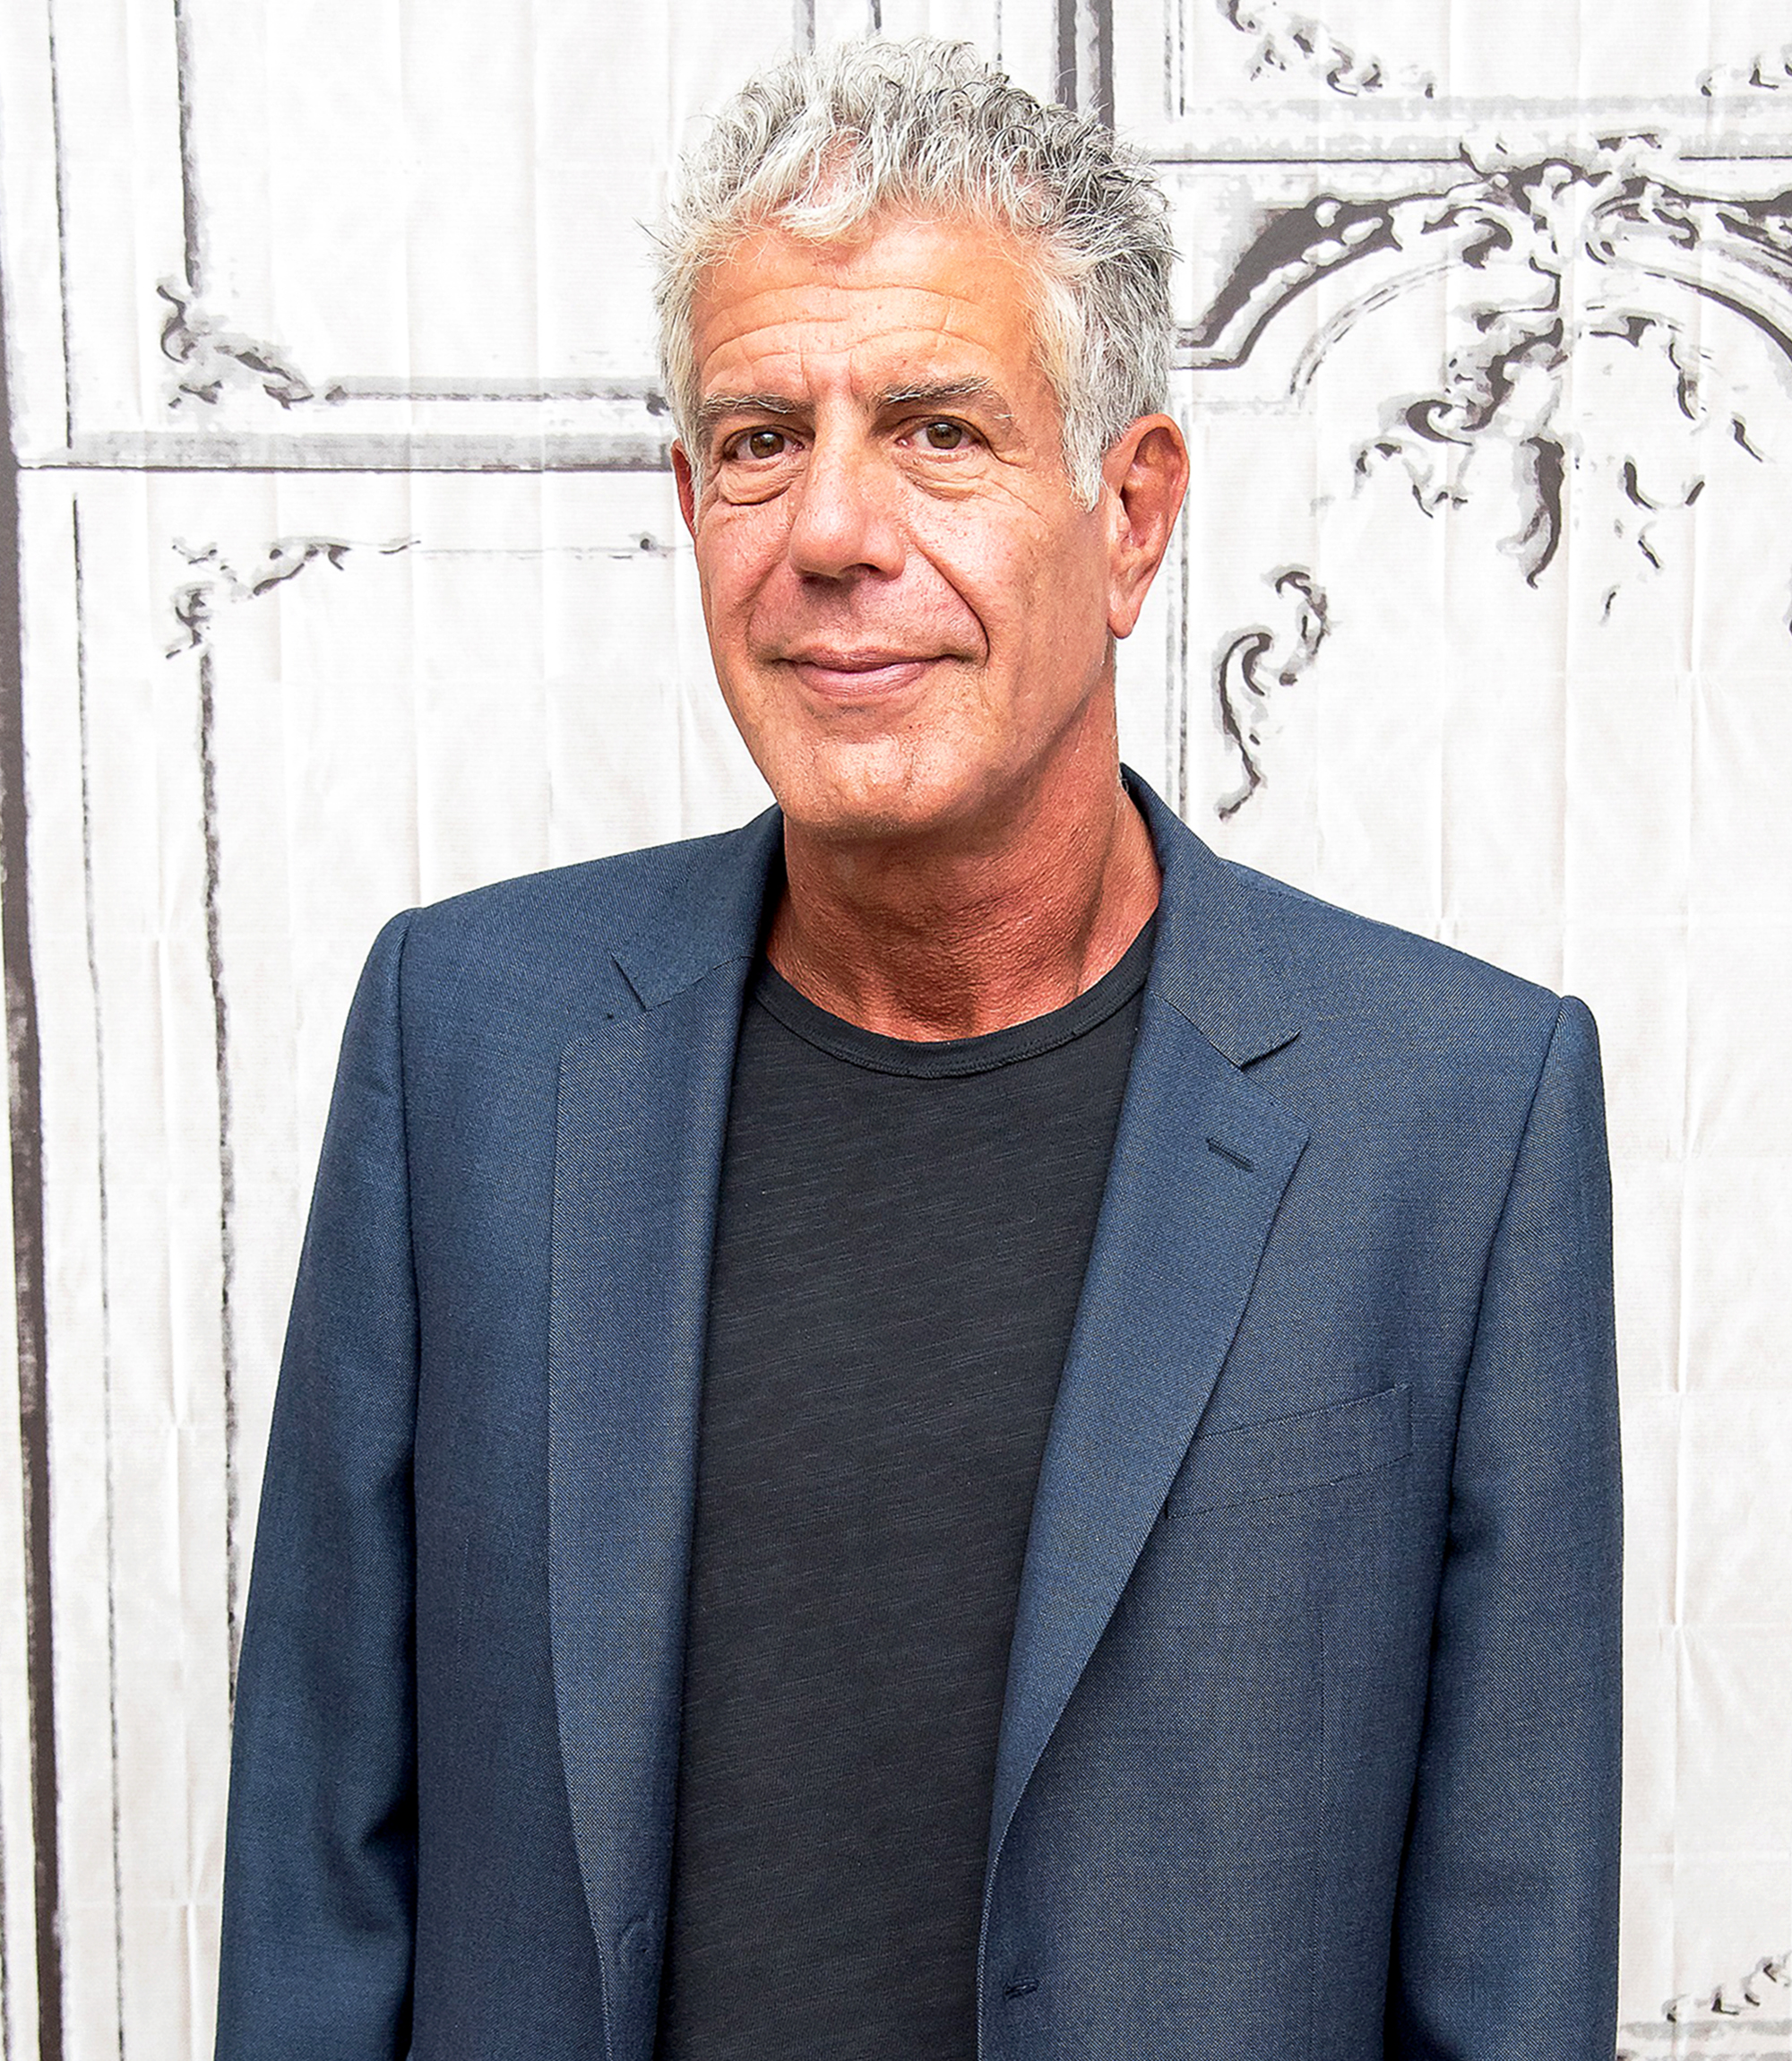 Anthony Bourdain visits the 2016 Build Series to discuss 'Raw Craft' at AOL HQ in New York City. - Anthony Bourdain visits the 2016 Build Series to discuss 'Raw Craft' at AOL HQ in New York City.